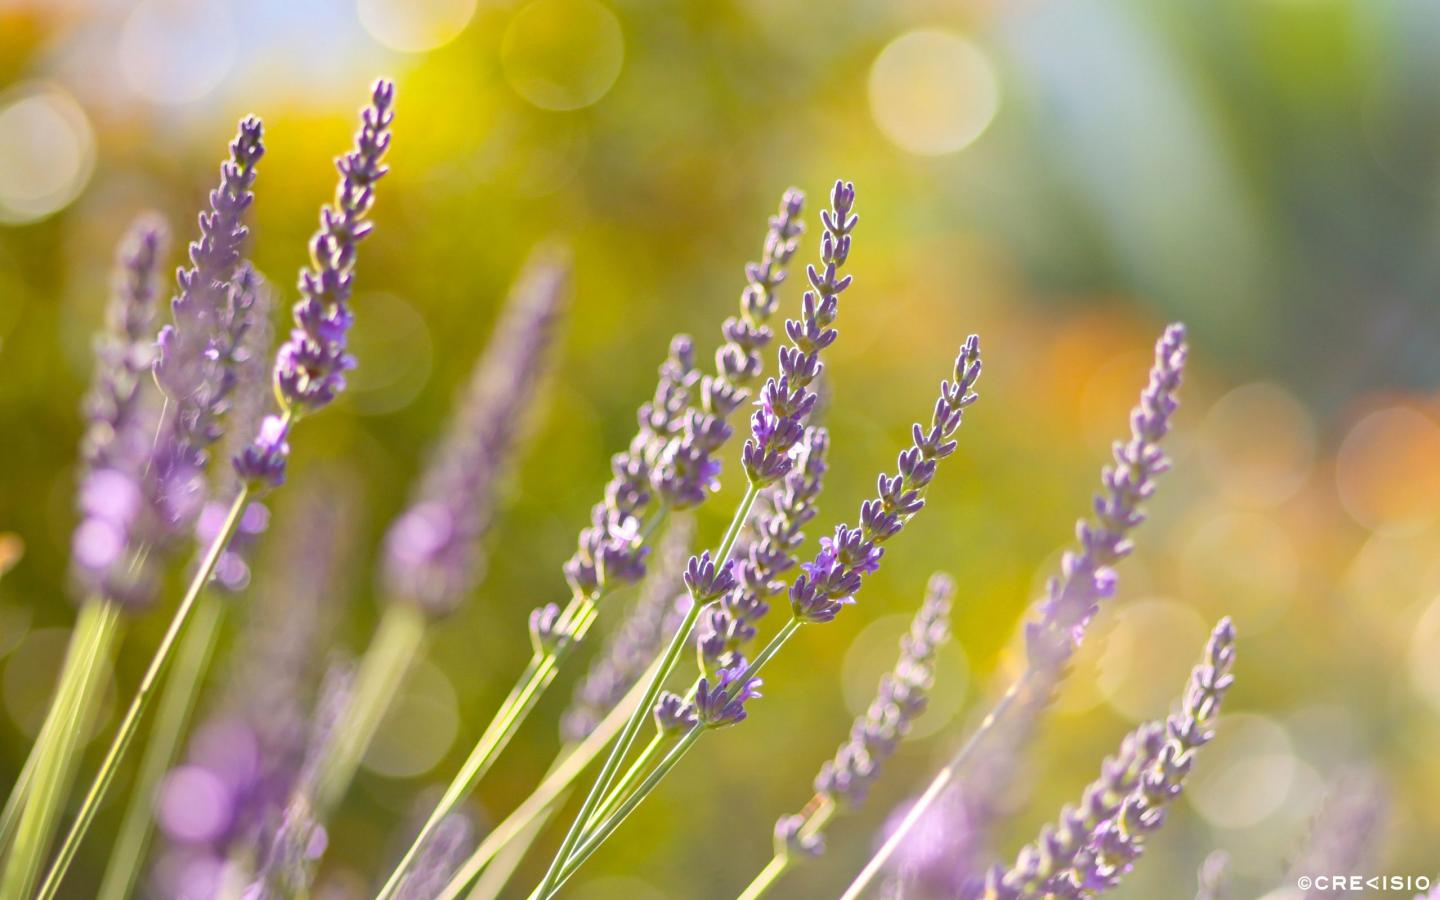 Early Lavender by Crevisio